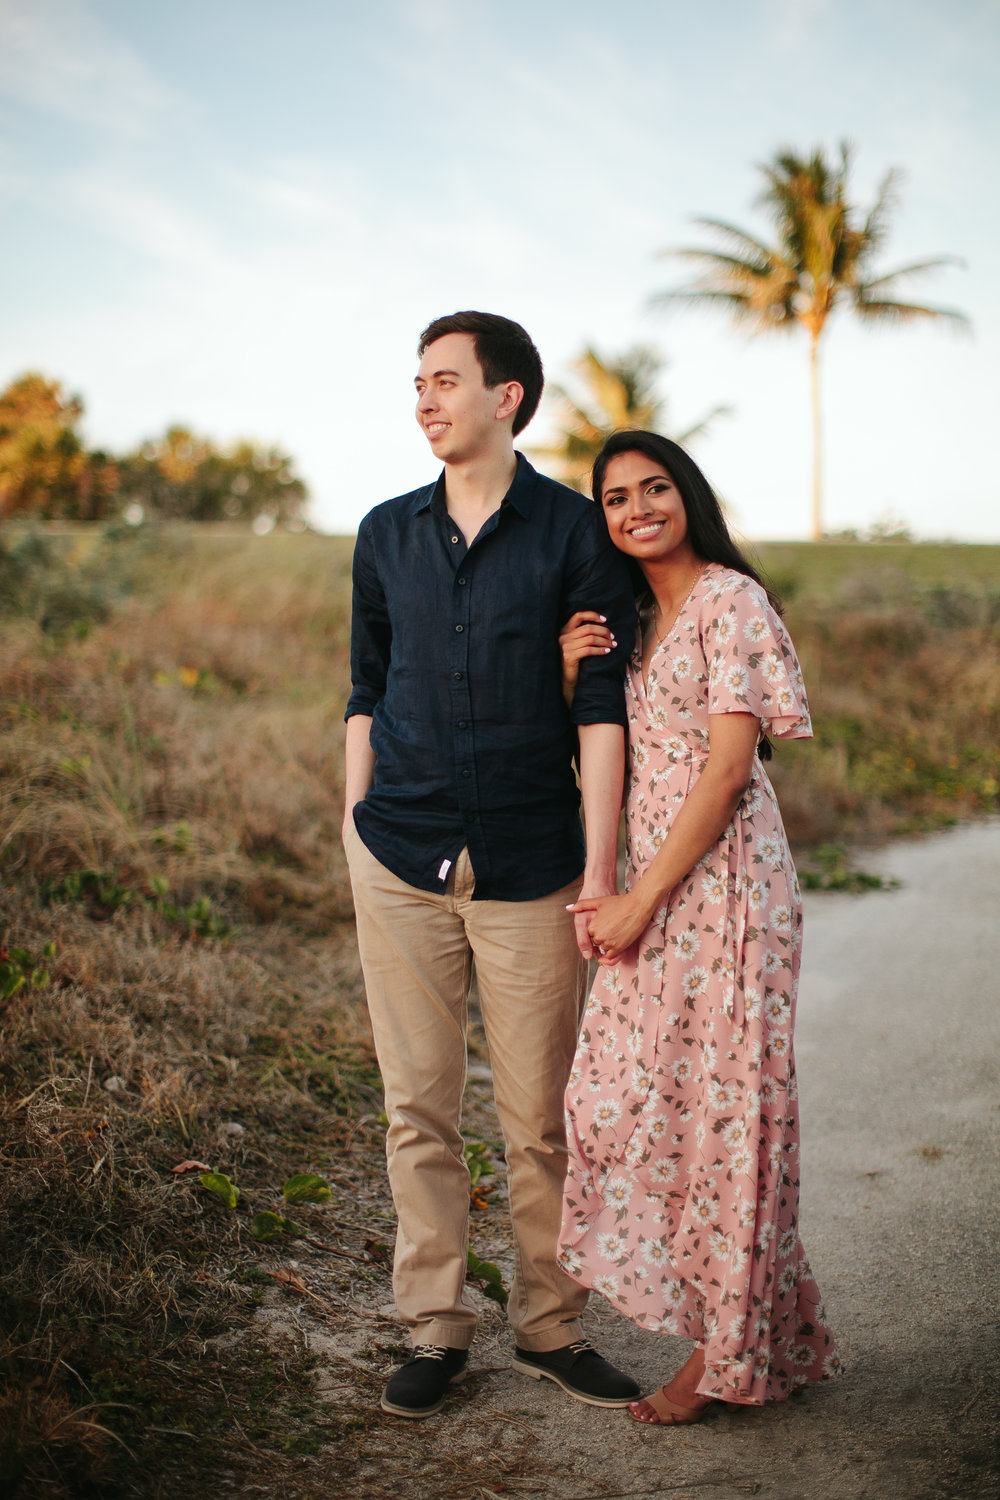 Betsy Hotel and South Pointe Park Engagement photos (35).jpg